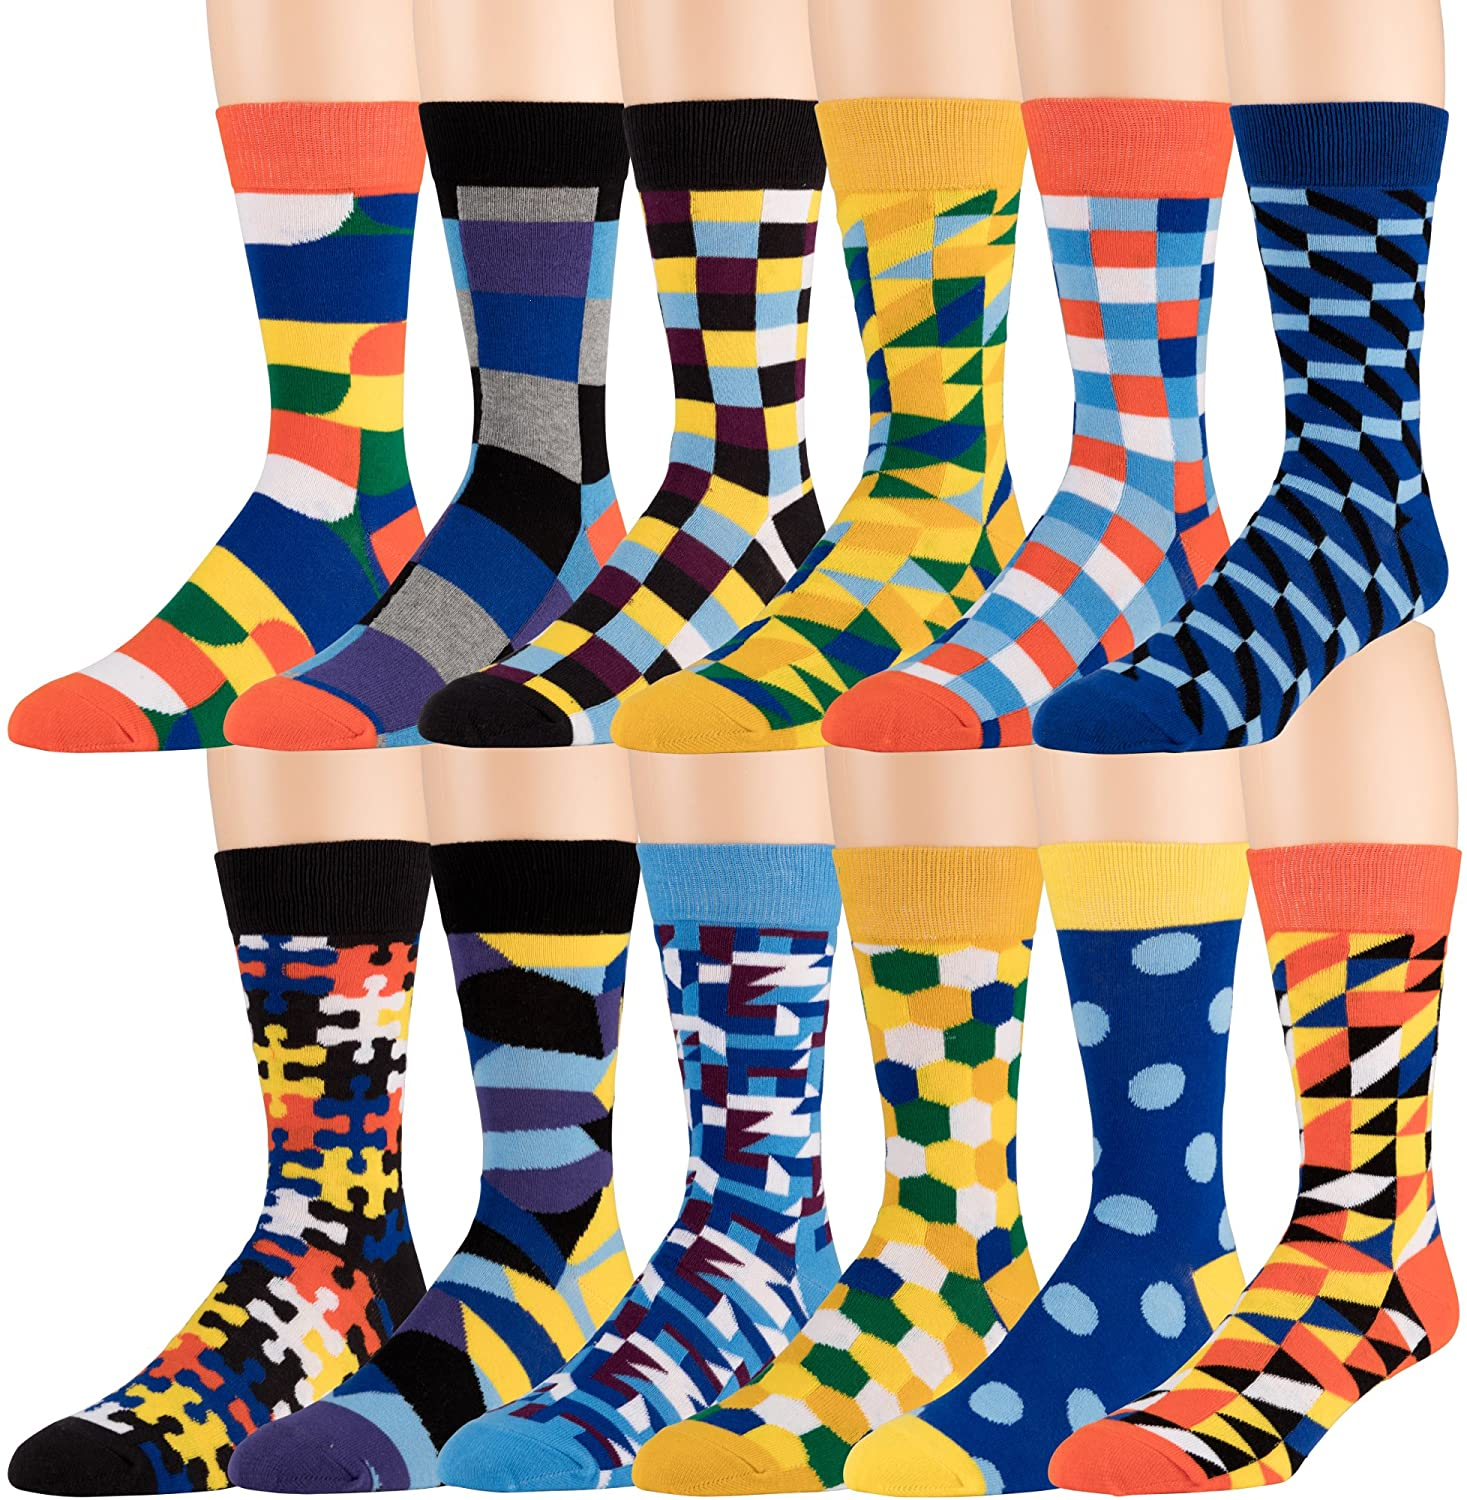 ZEKE Men's Cotton Dress Socks - 12 Pack Funky Colorful Crew Socks - Fashion Patterned Fun Striped Argyle